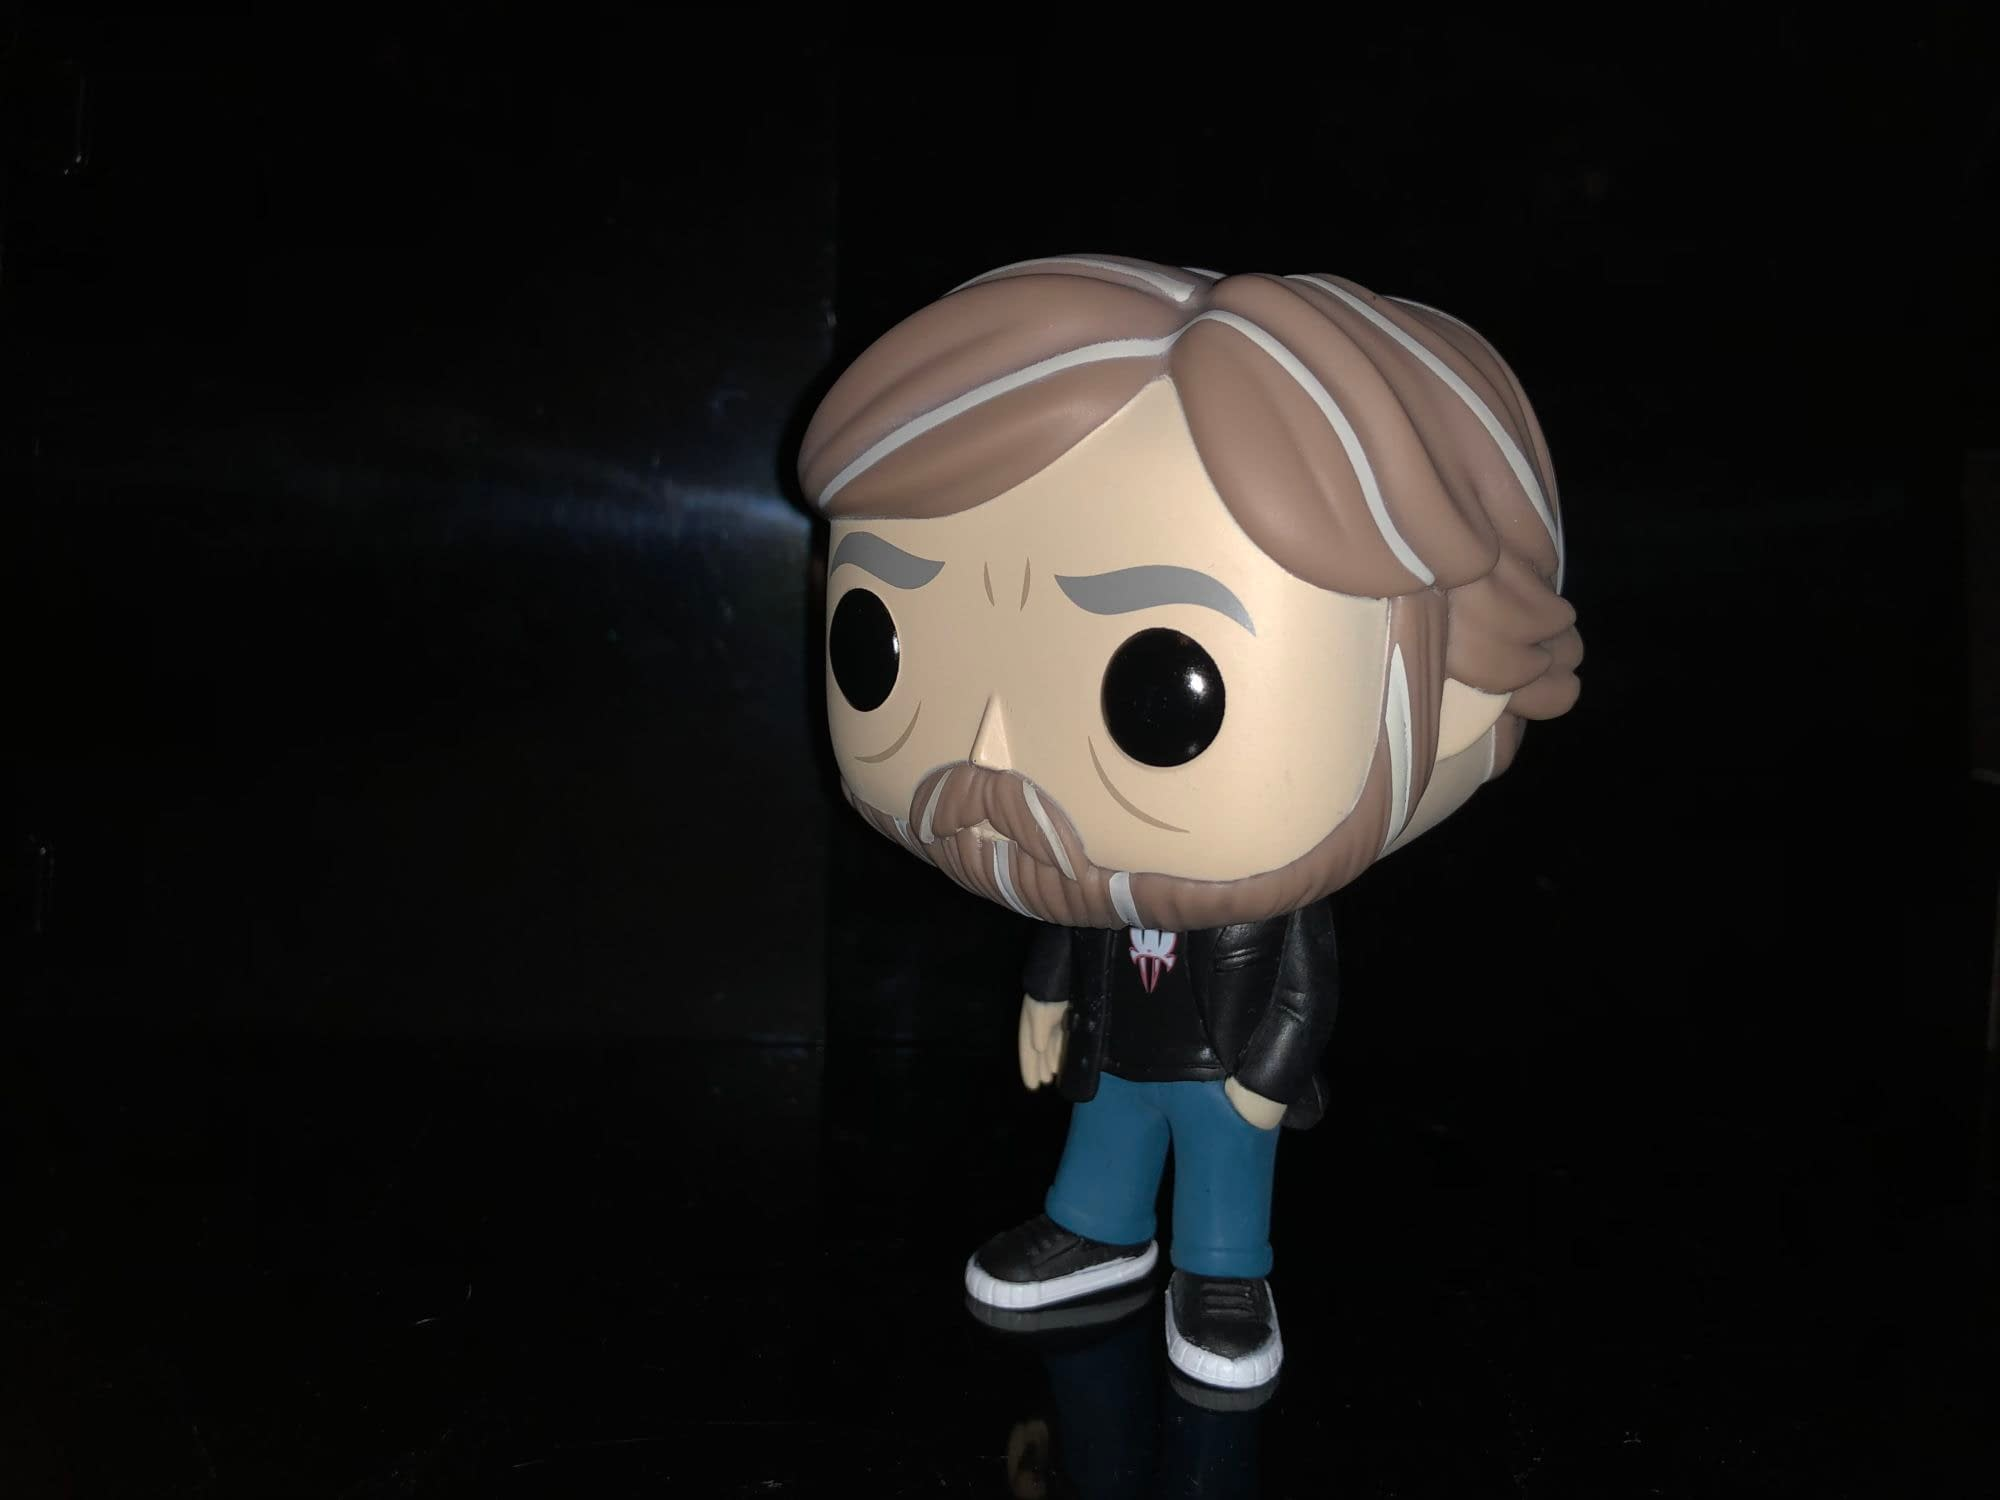 Mark Hamill Gets a Special Funko Exclusive to Designer Con